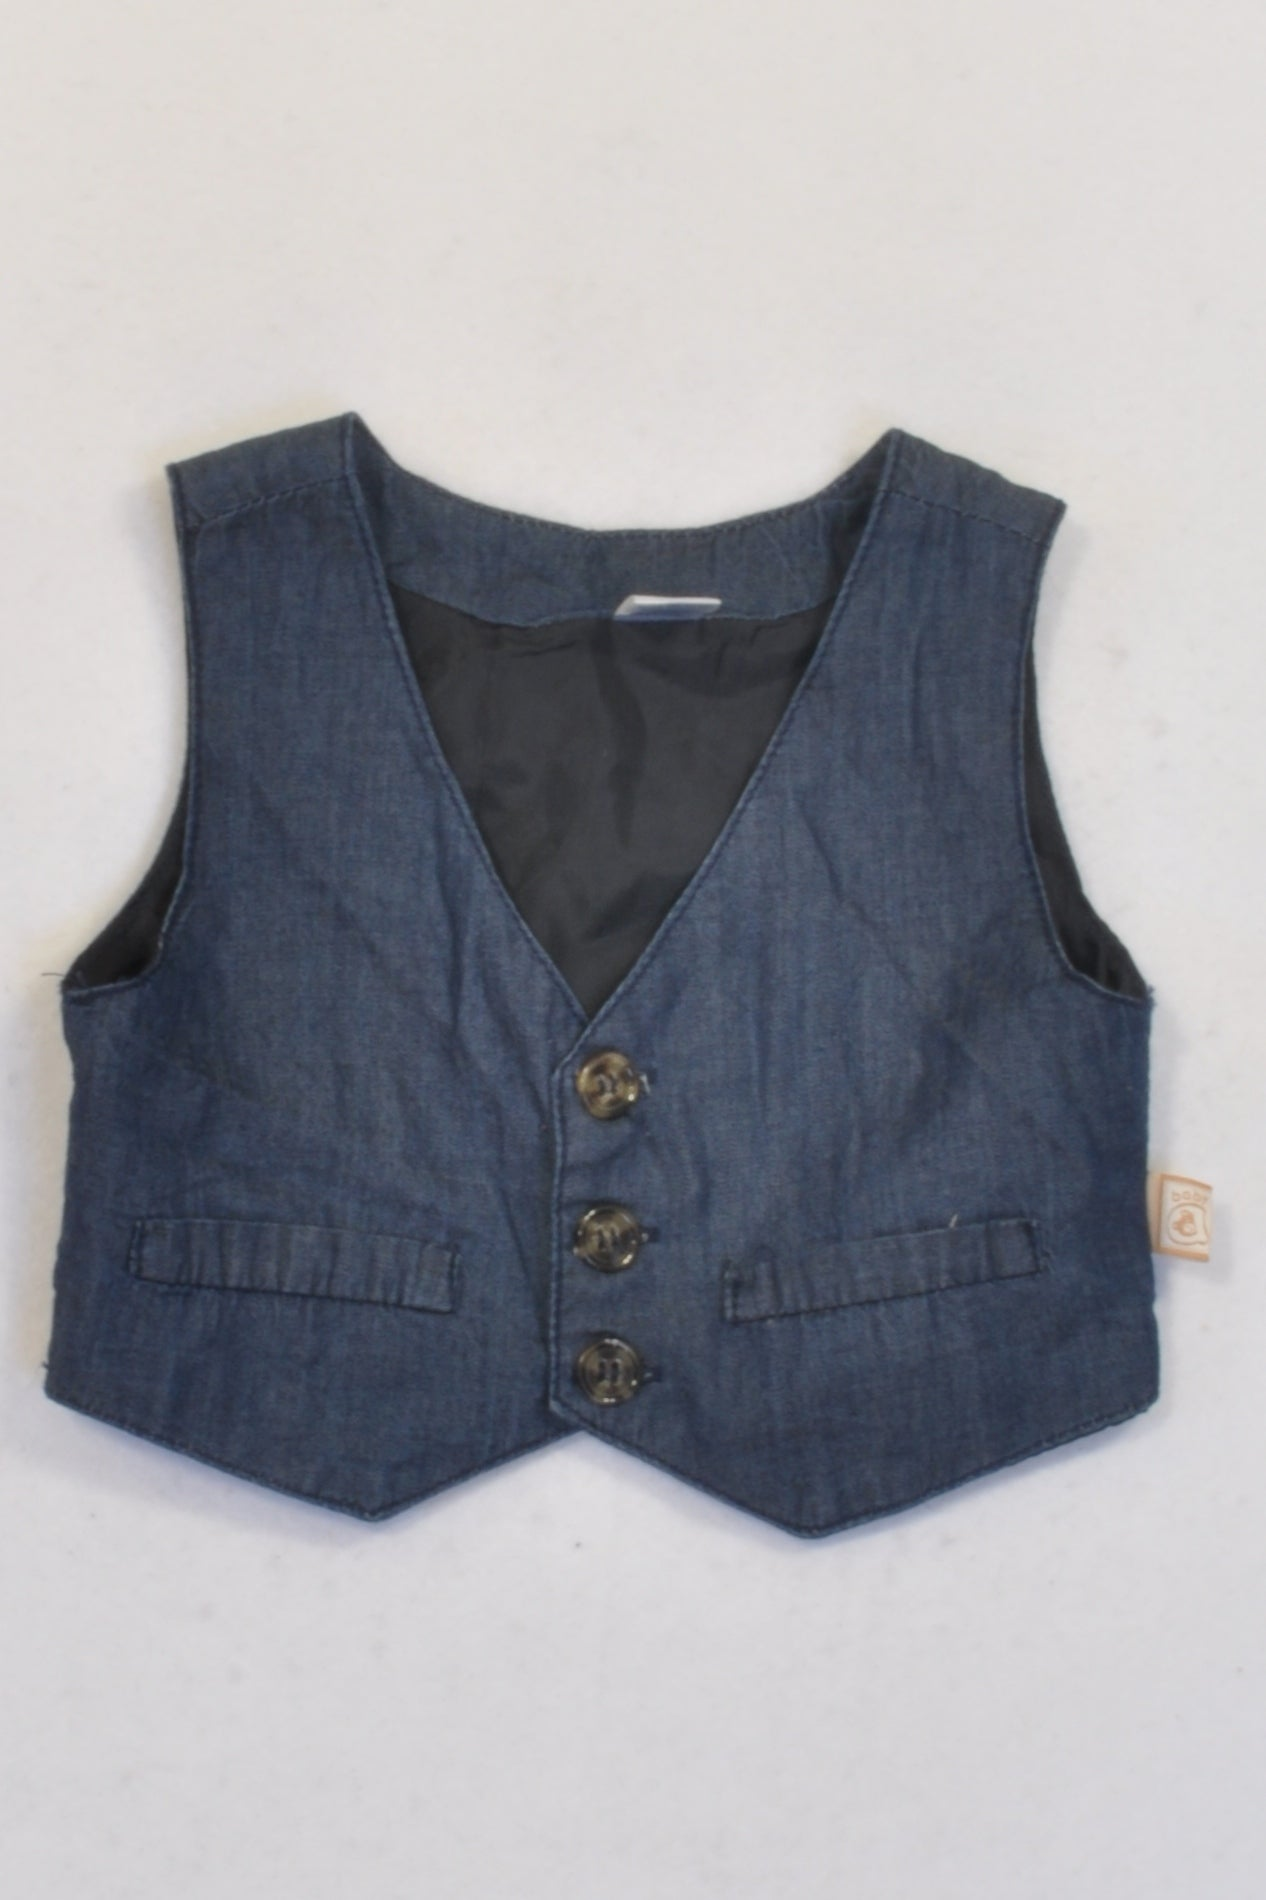 Ackermans Denim Tortoise Shell Button Waistcoat Jacket Boys 3-6 months